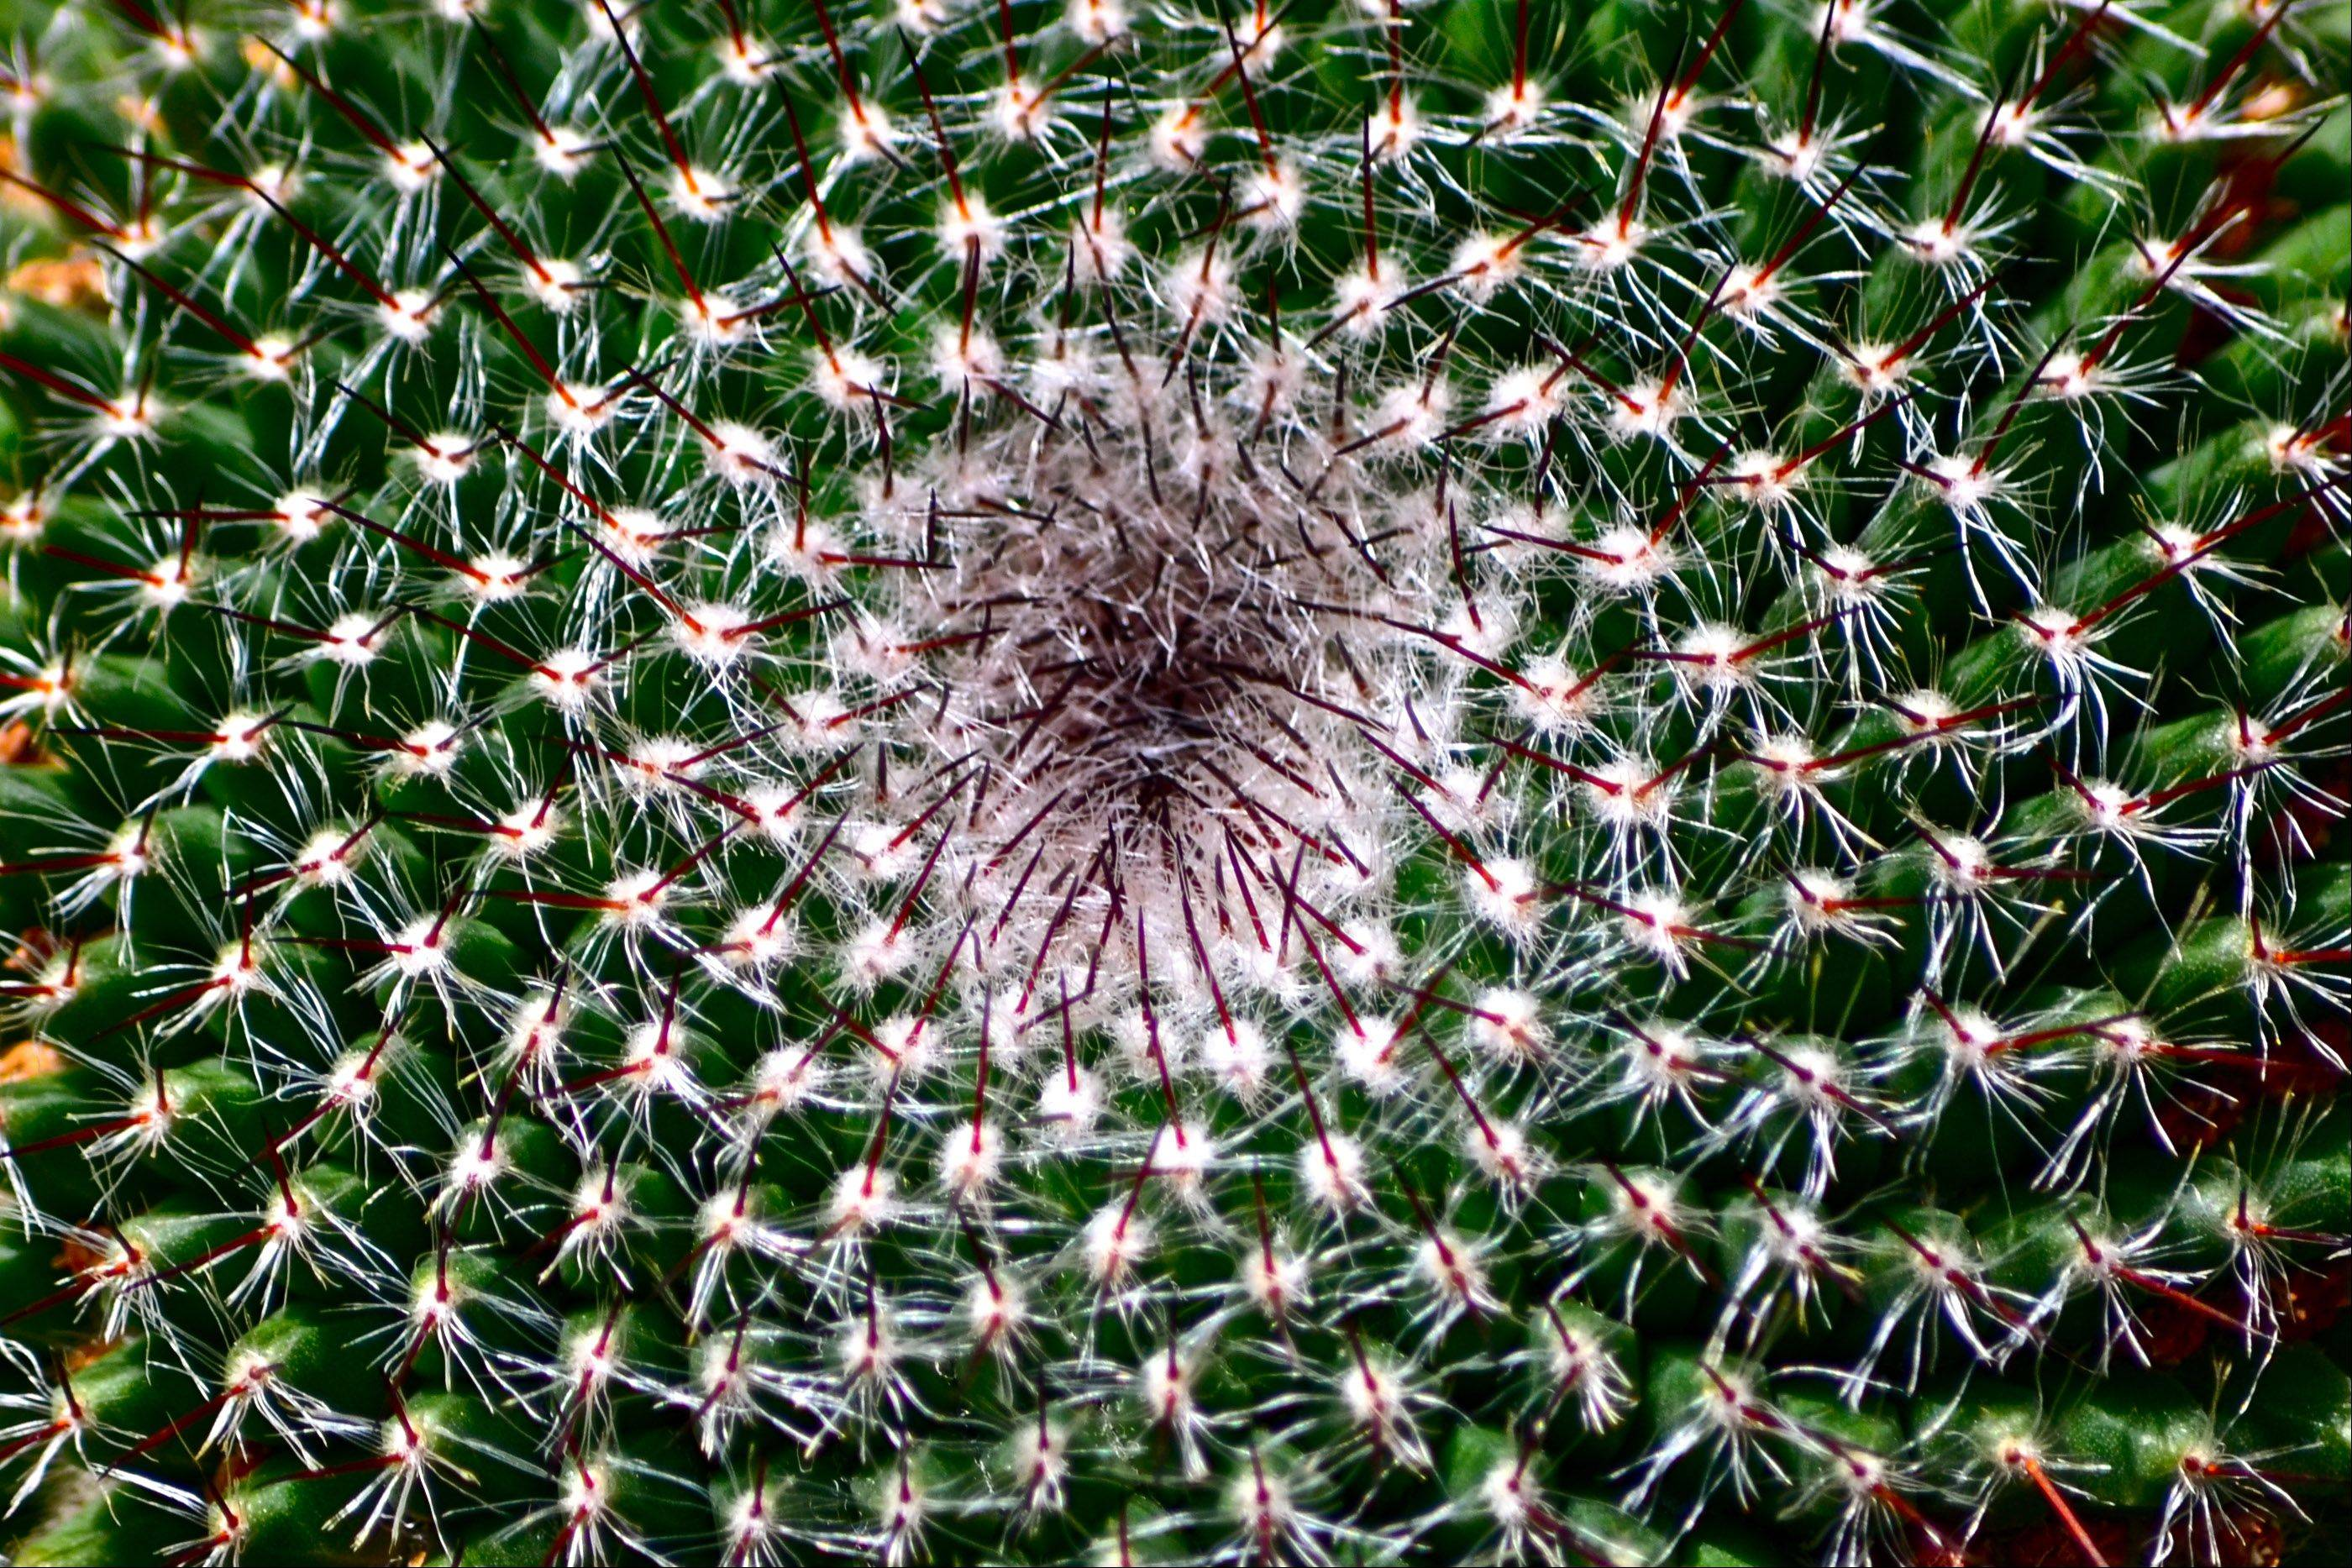 I took this picture of a barrel cactus while in Arizona for spring training a couple of years ago. This one was at the Phoenix Botanic Garden on a March day with the temperature at 91 degrees.